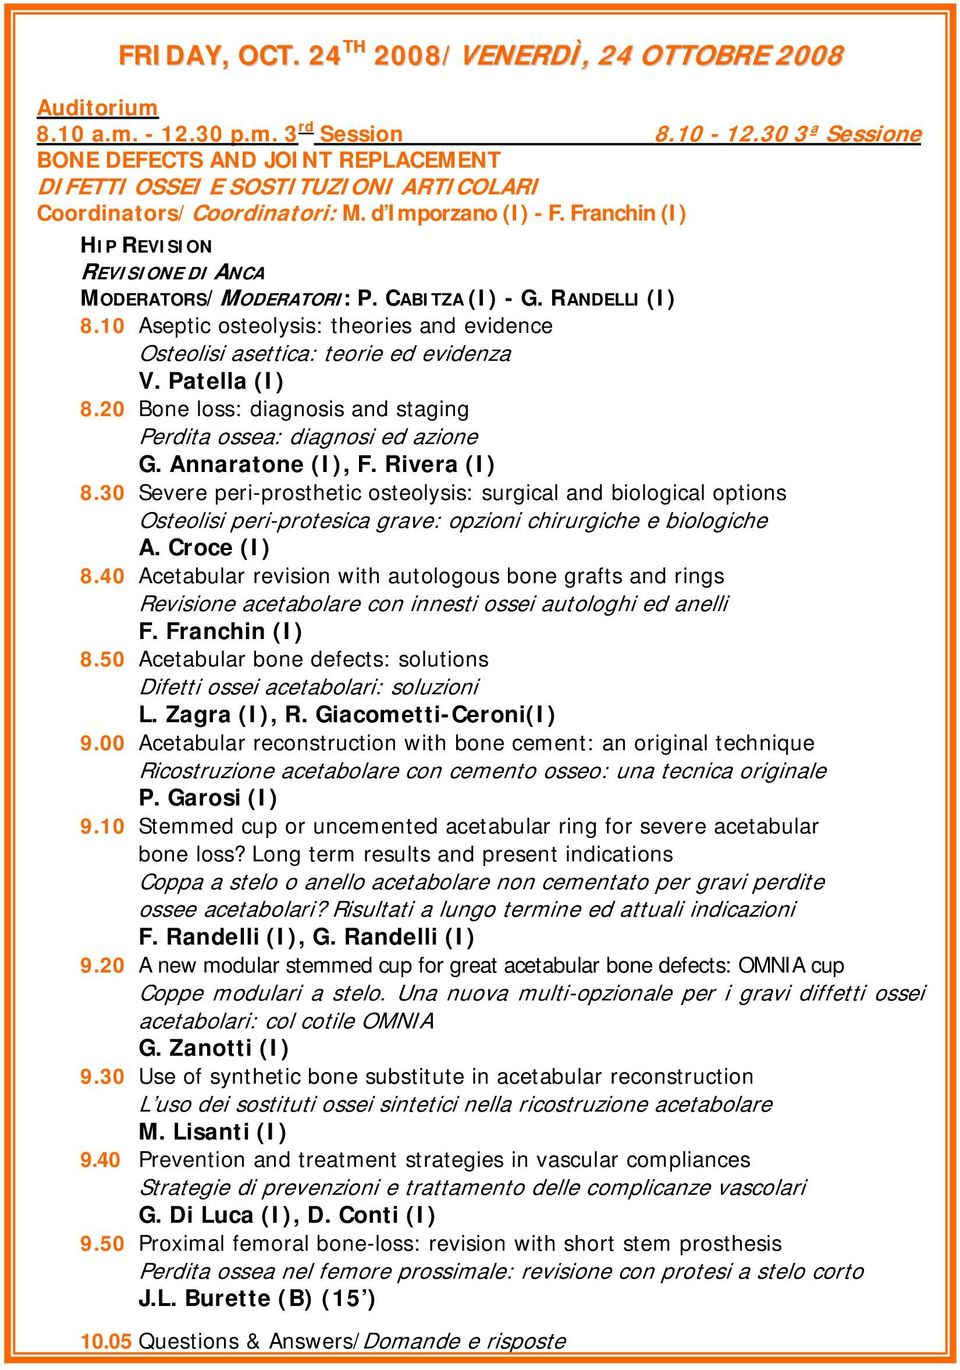 Franchin (I) HIP REVISION REVISIONE DI ANCA MODERATORS/MODERATORI: P. CABITZA (I) - G. RANDELLI (I) 8.10 Aseptic osteolysis: theories and evidence Osteolisi asettica: teorie ed evidenza V.